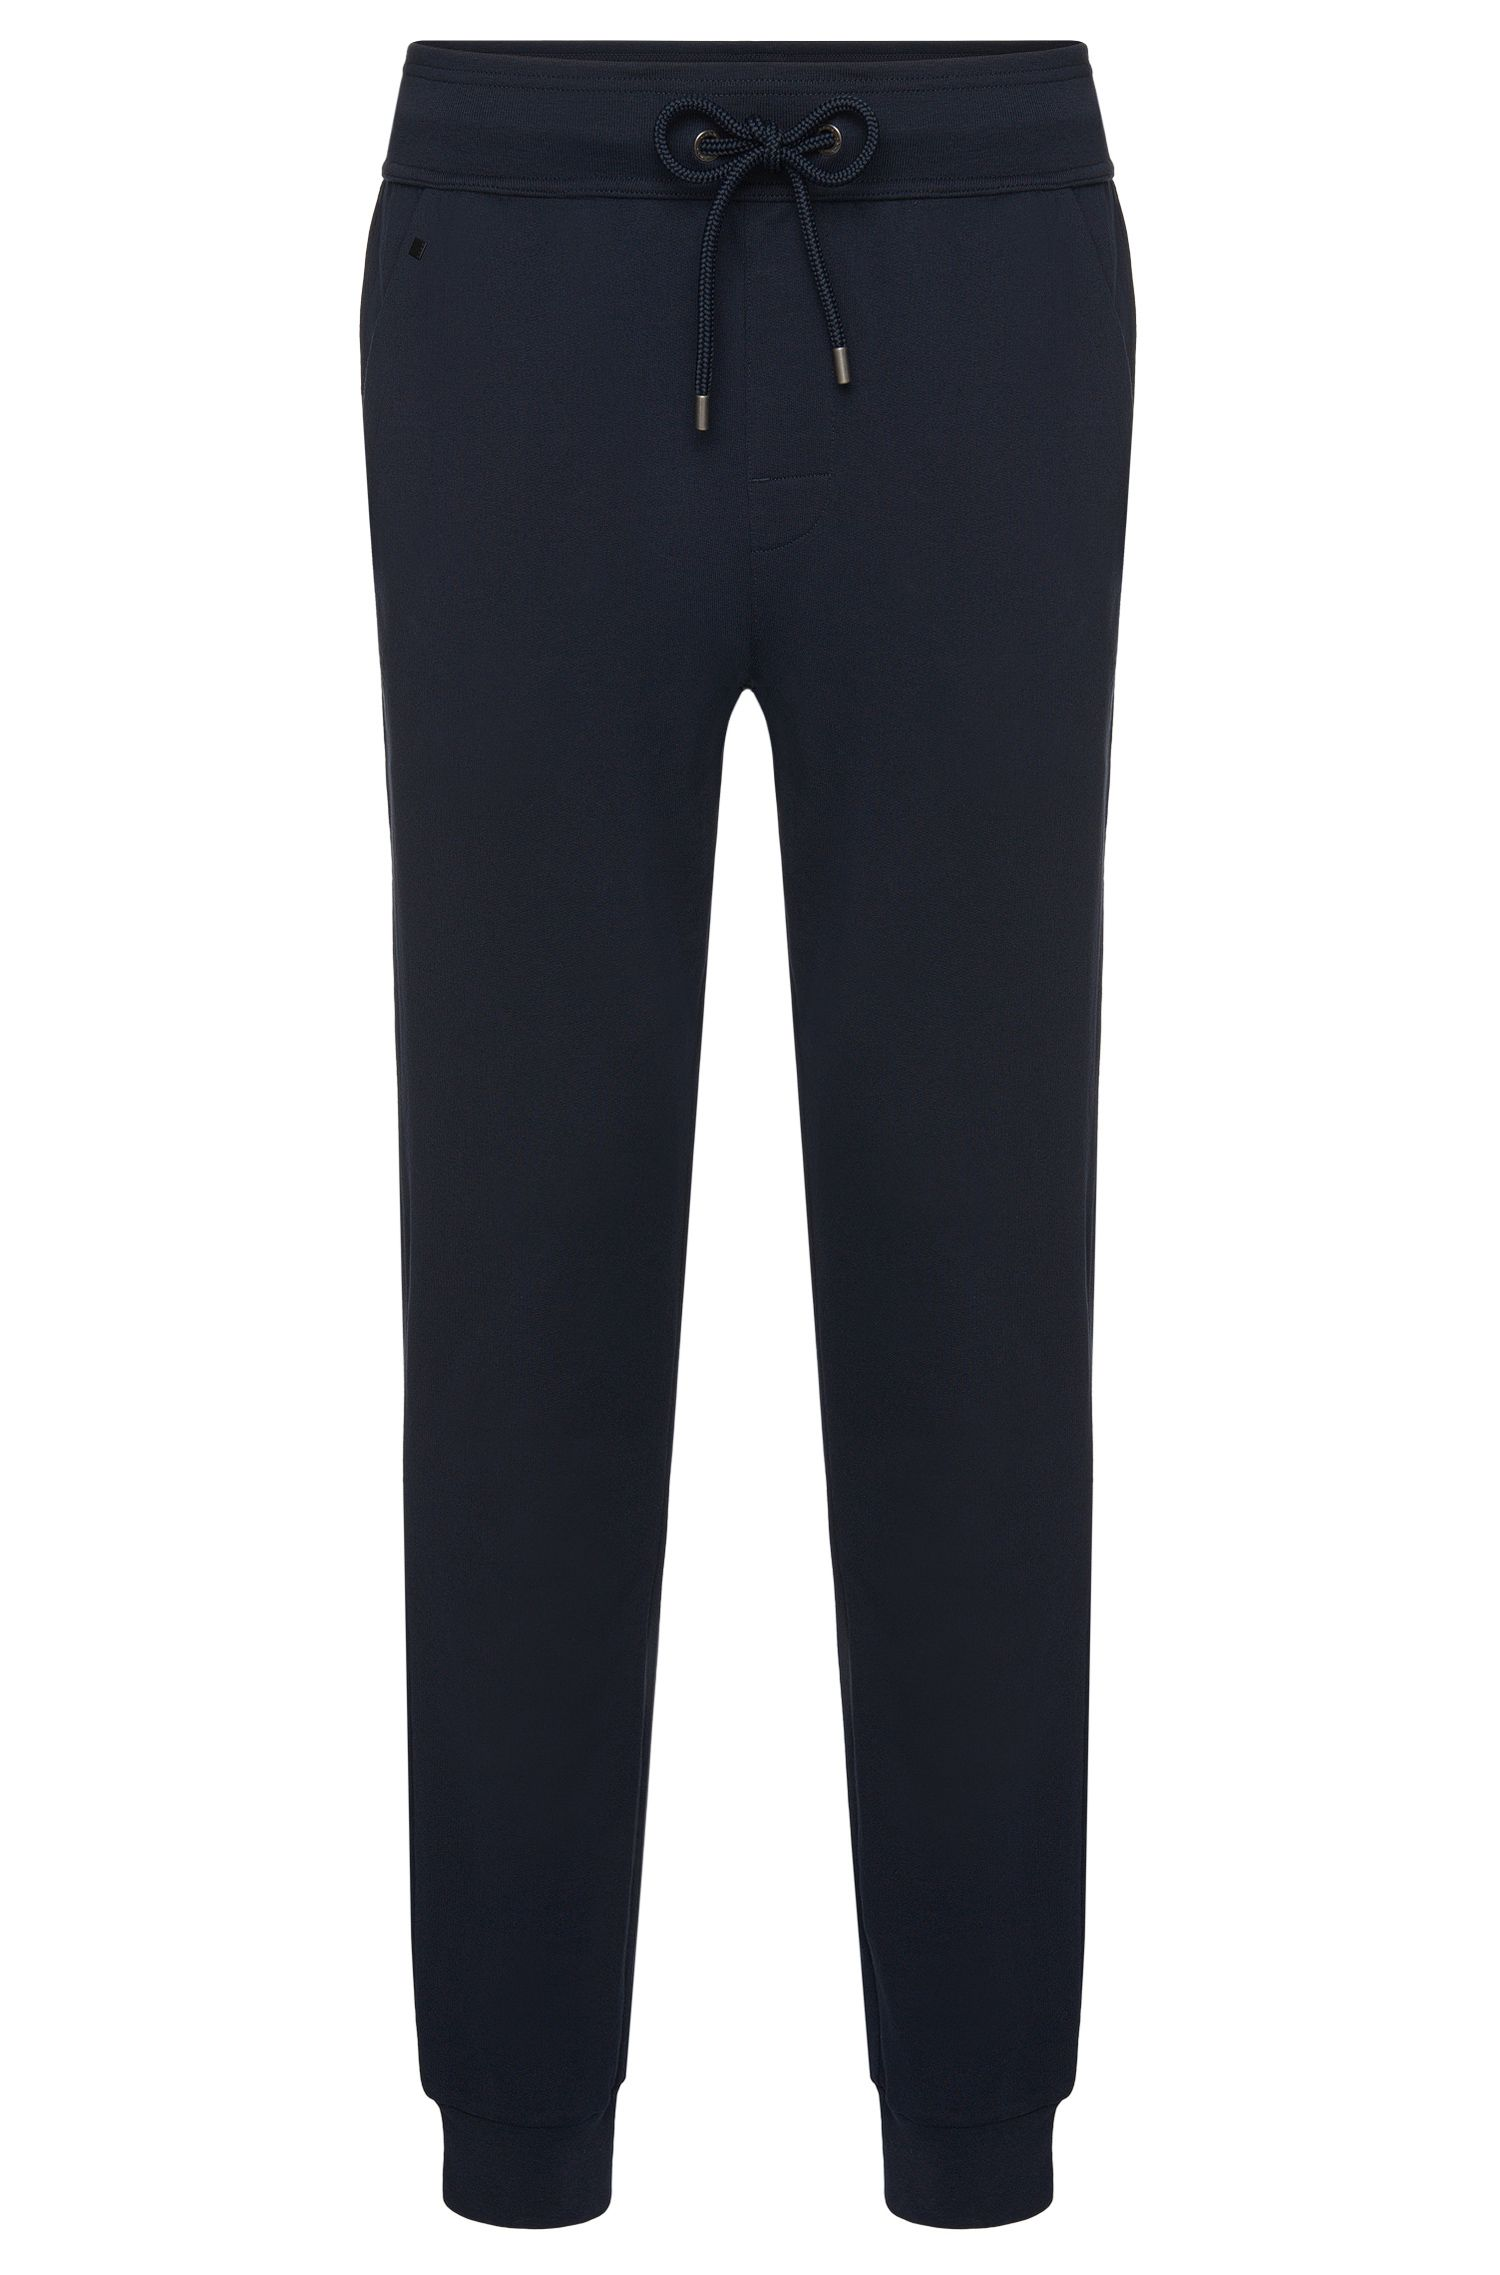 Cotton Sweat Pant | Long Pant Cuffs